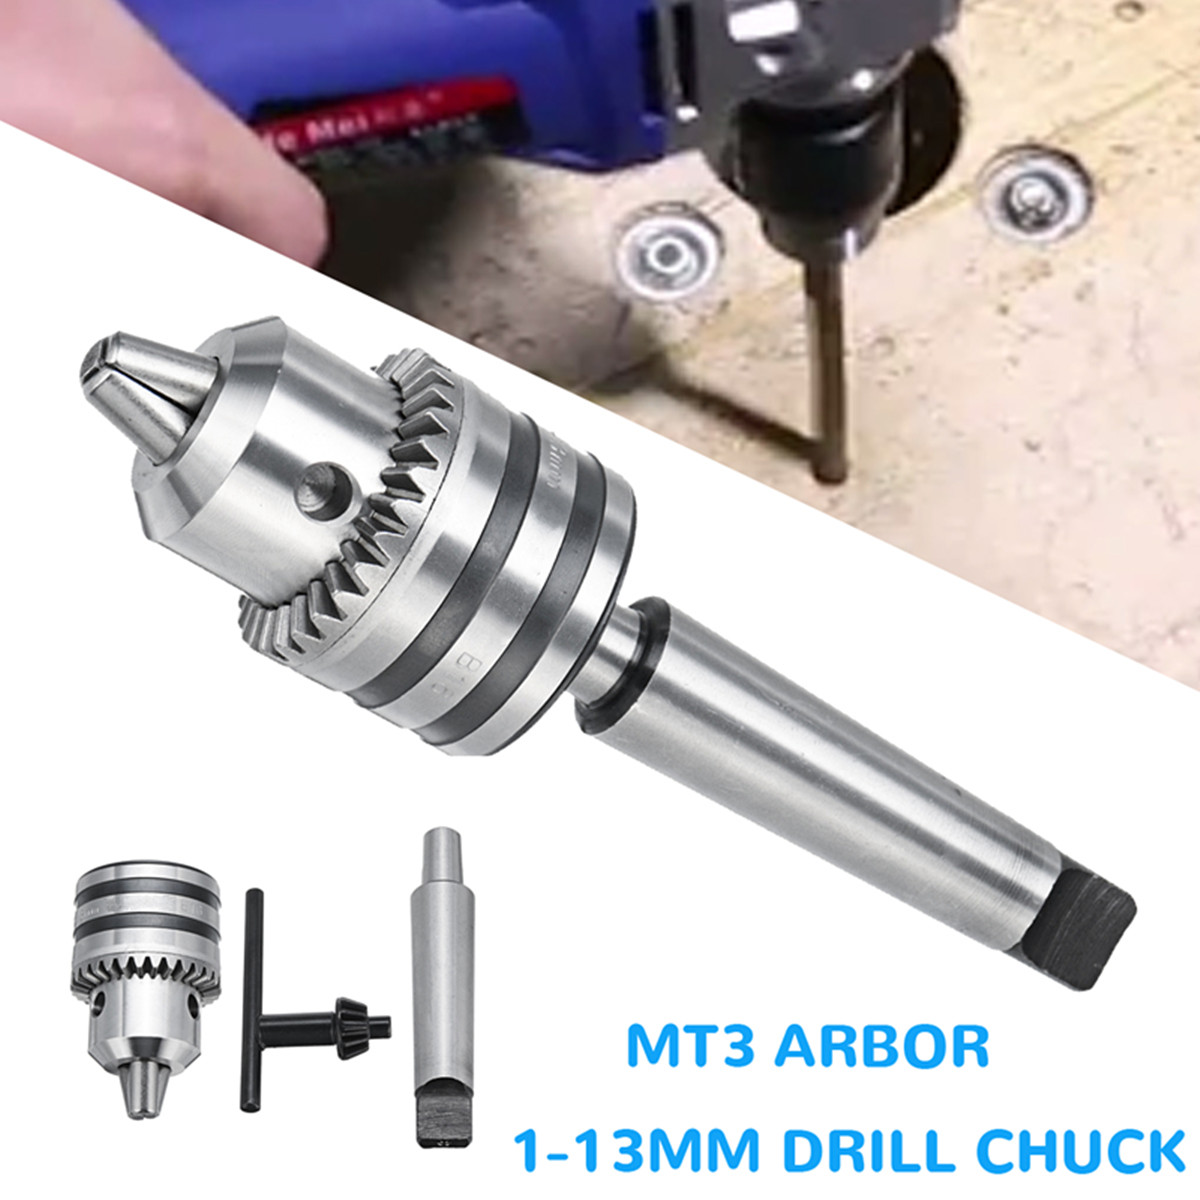 MT3 1-13mm Heavy   Drill Chuck with MT3 Morse Taper Arbor For Mini Lathe Rotary Hammer Hand ToolMT3 1-13mm Heavy   Drill Chuck with MT3 Morse Taper Arbor For Mini Lathe Rotary Hammer Hand Tool